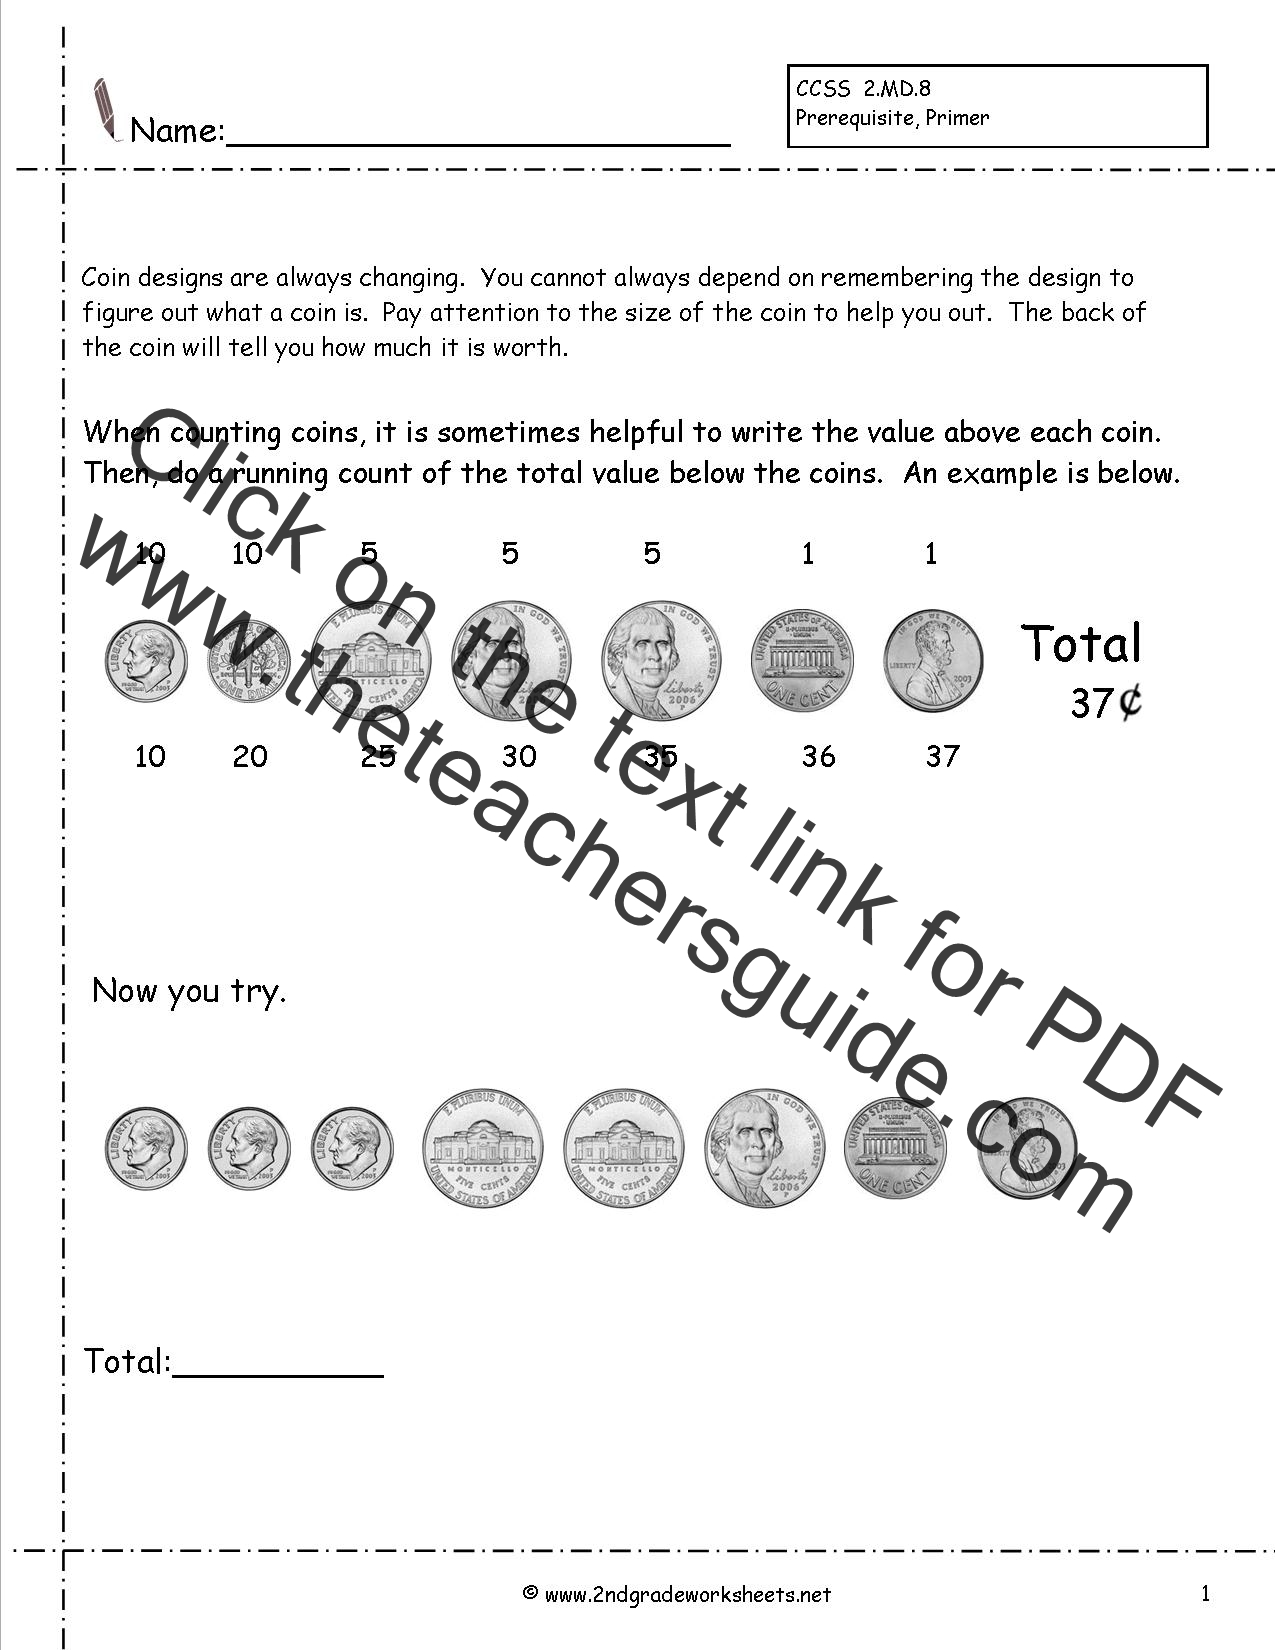 worksheet Money Practice Worksheets ccss 2 md 8 worksheets counting coins money practice worksheet introduction